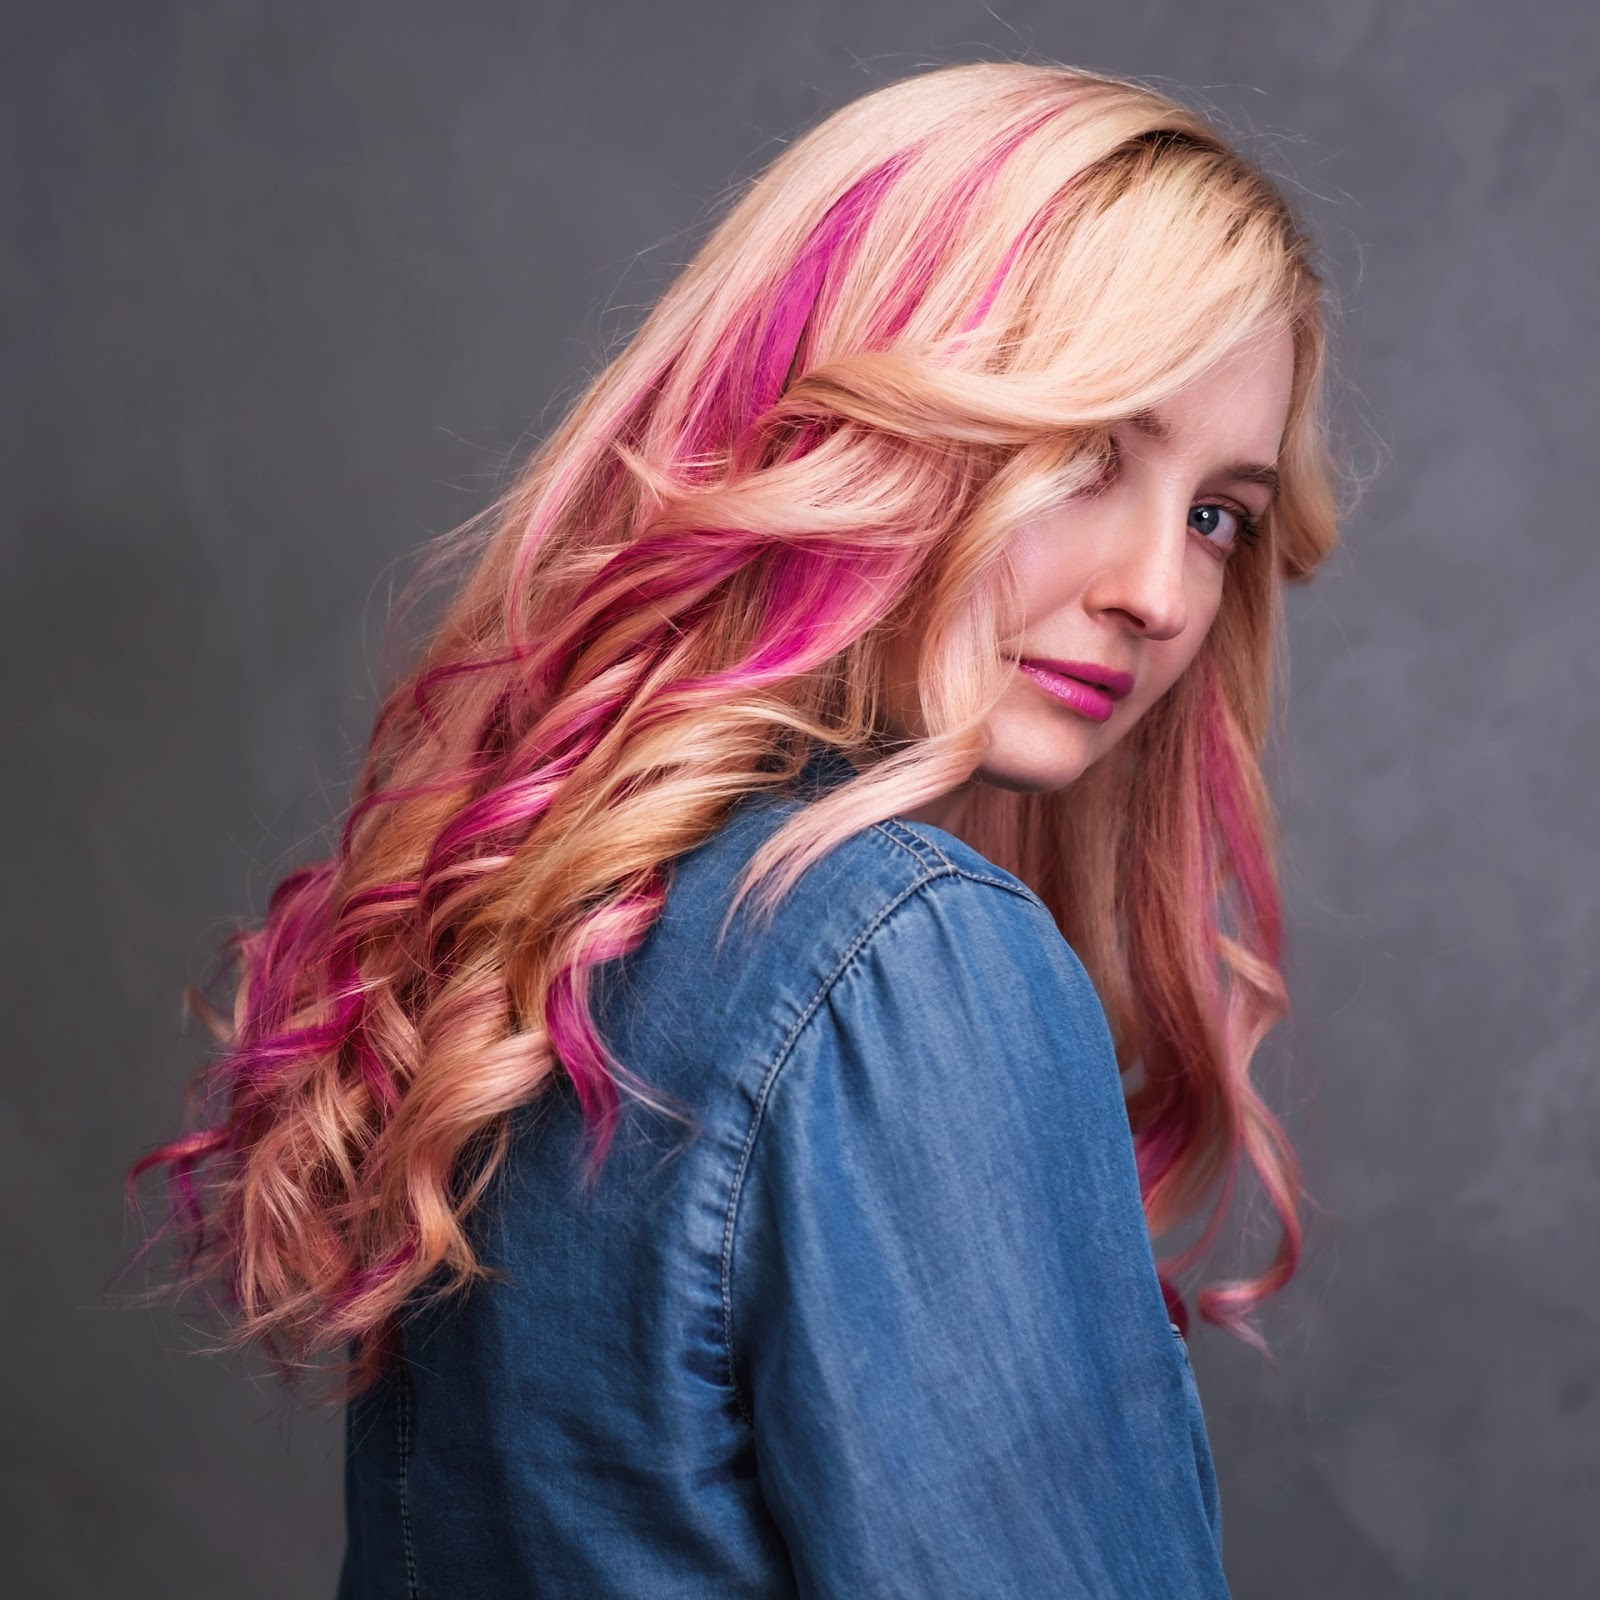 5 Pink Hair Color Ideas To Spice Up Your Looks For 2019 Inmagazine